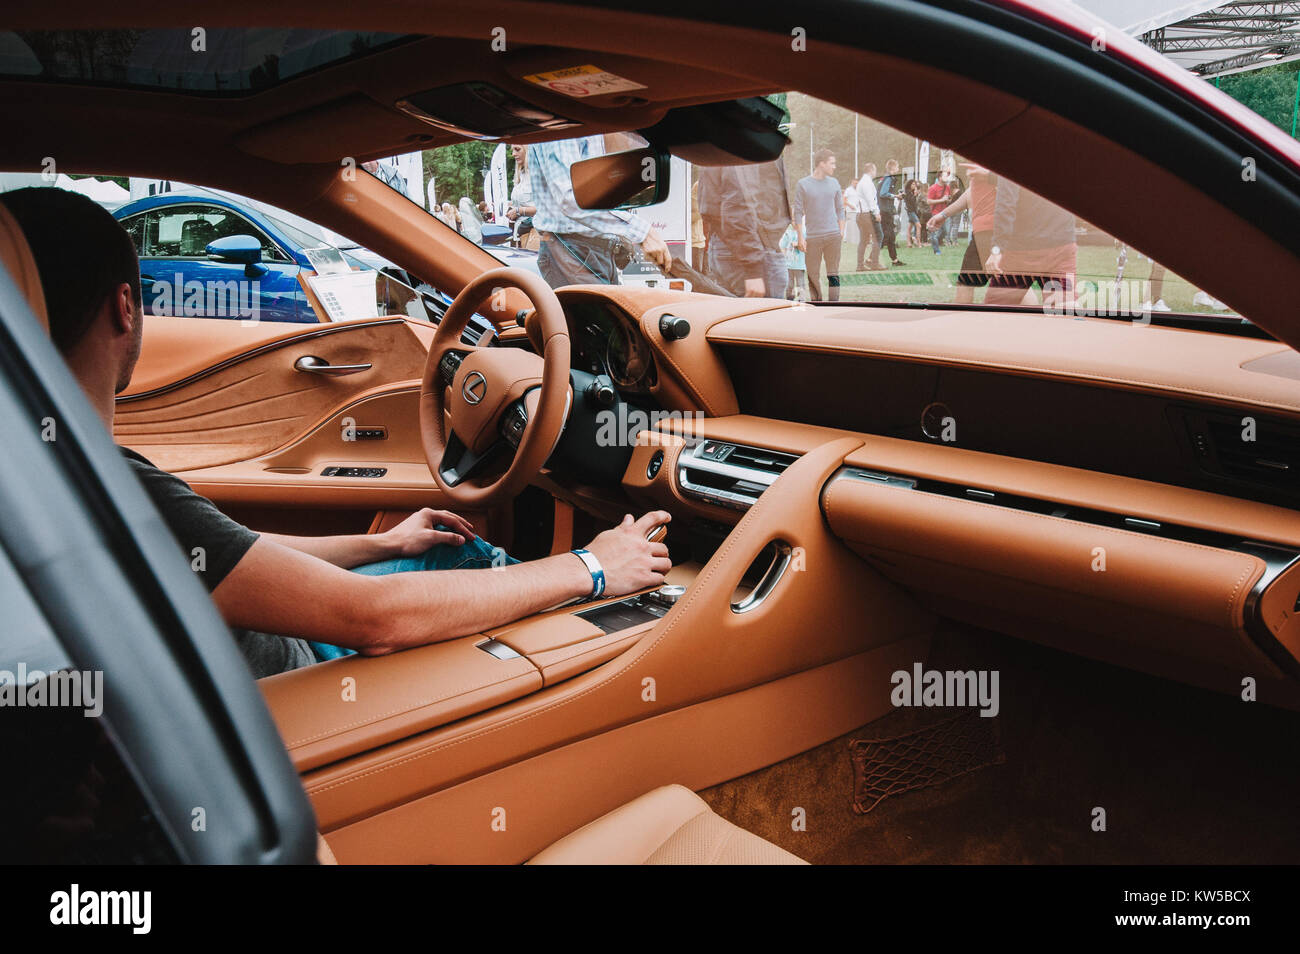 Inside Lexus  on Motoshow Classic in Poland, Wroclaw, 06.08.2017 - Stock Image